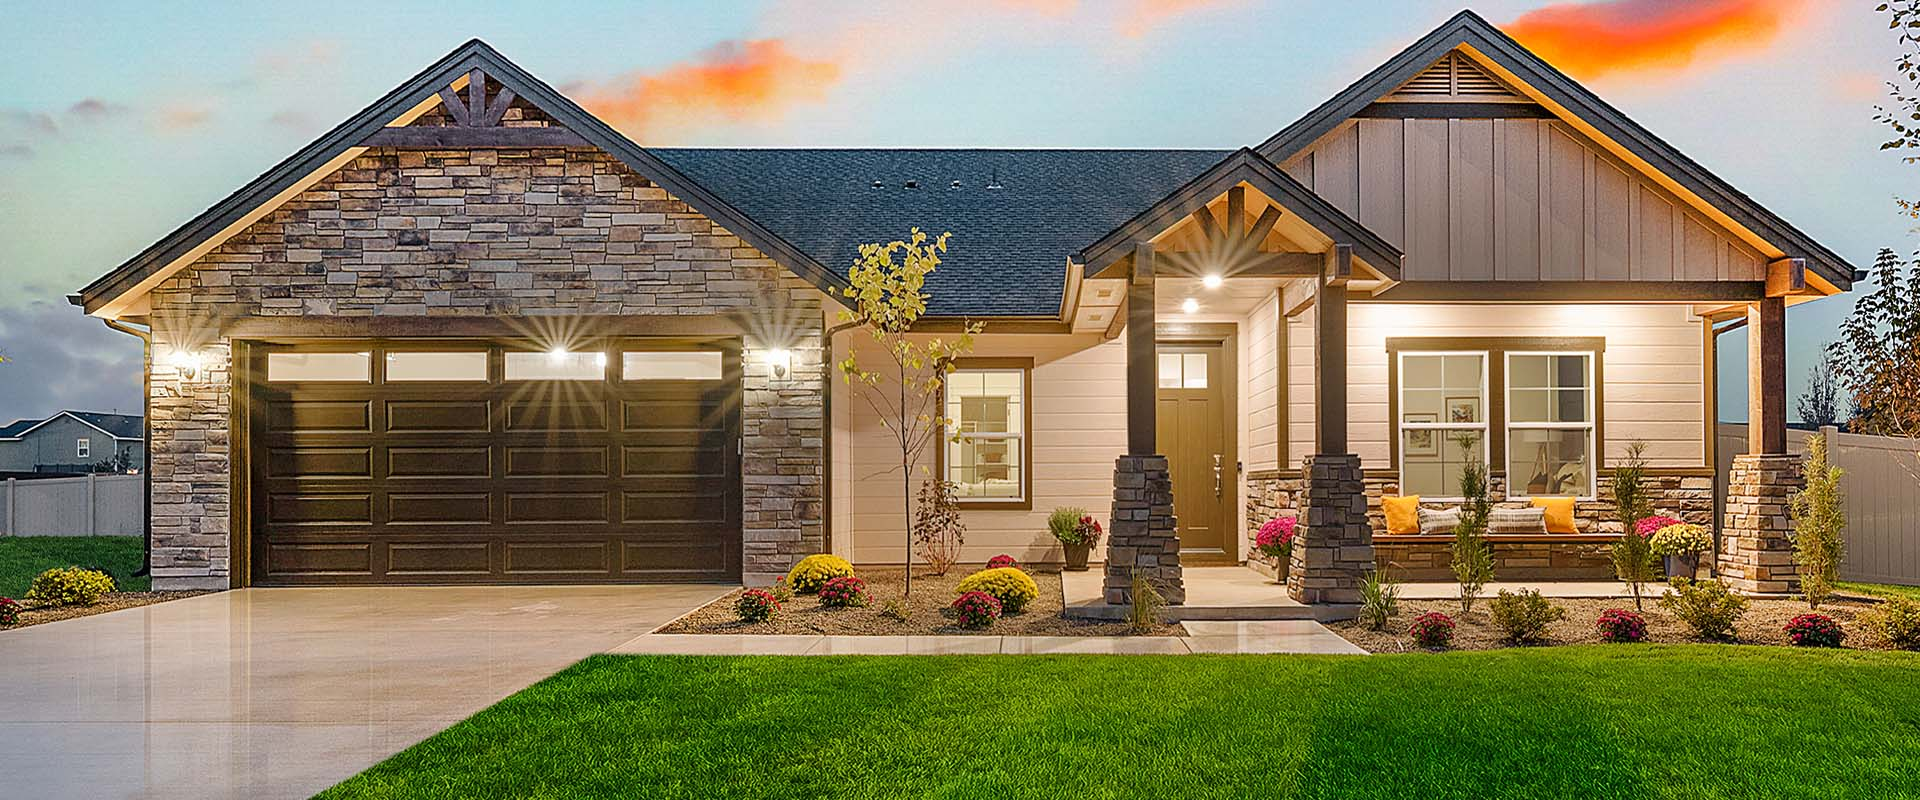 New_Homes_and_Communities_Boise_Idaho_Hubble_Homes_04.14.jpg